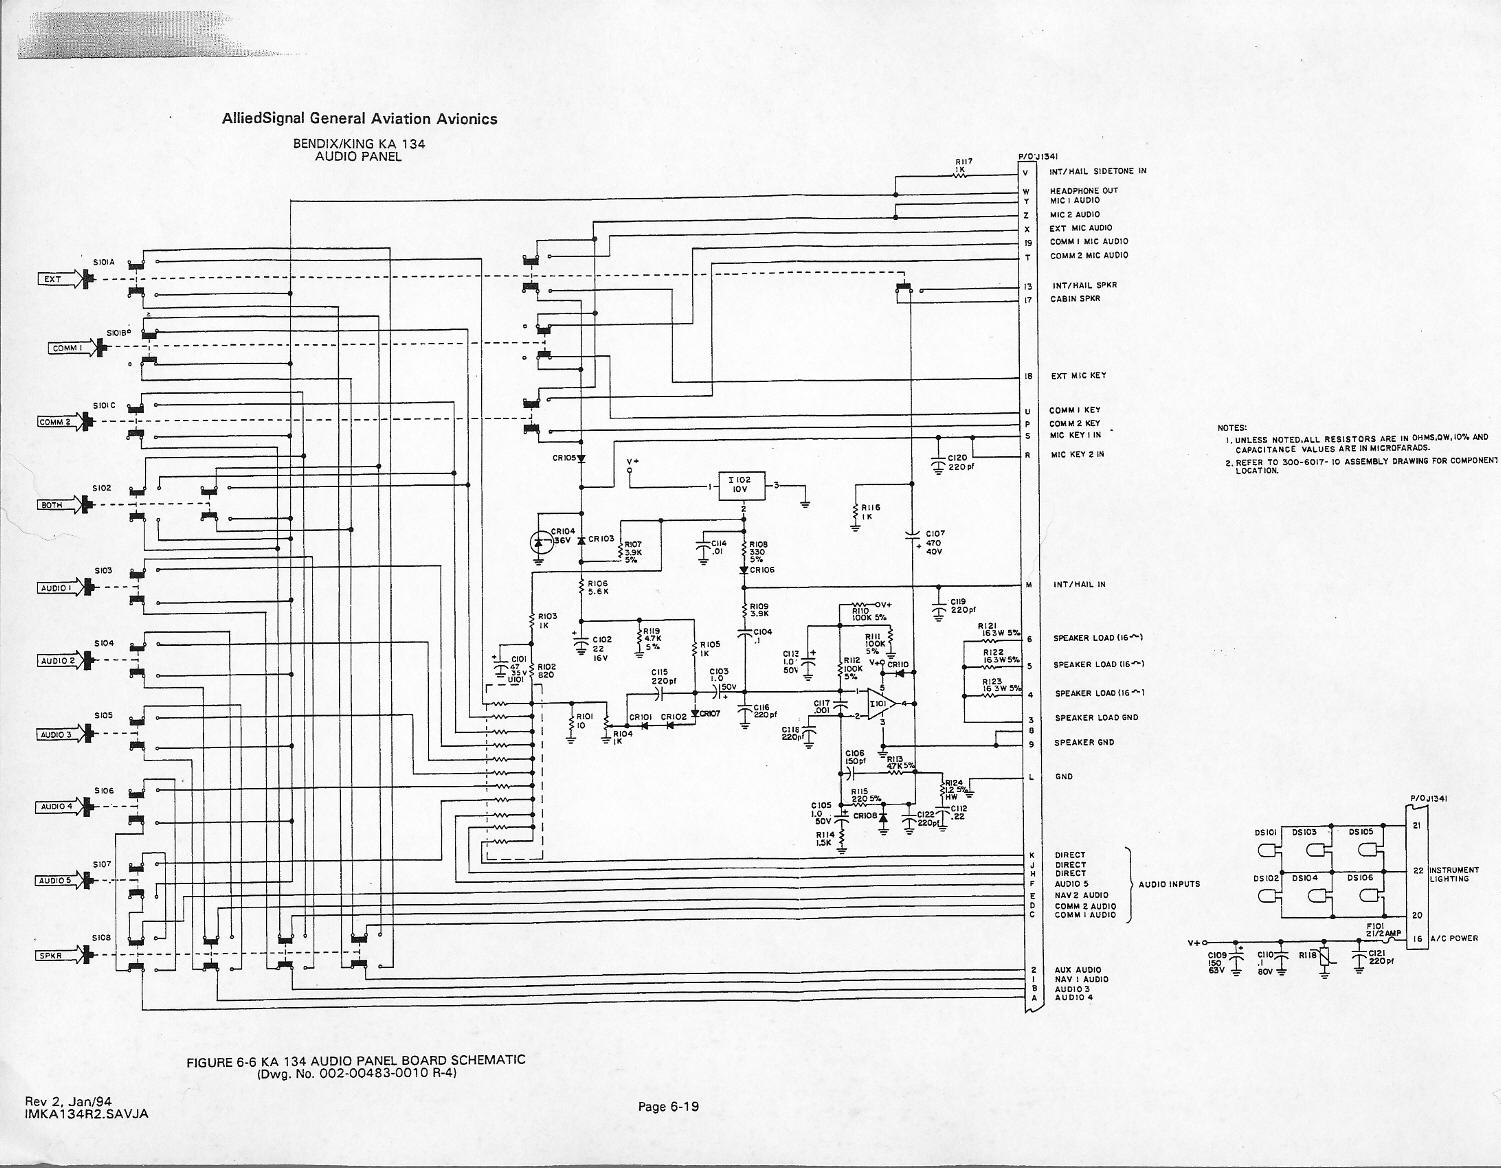 ka134_r4 first flight prep king ka 134 audio panel wiring diagram at mr168.co